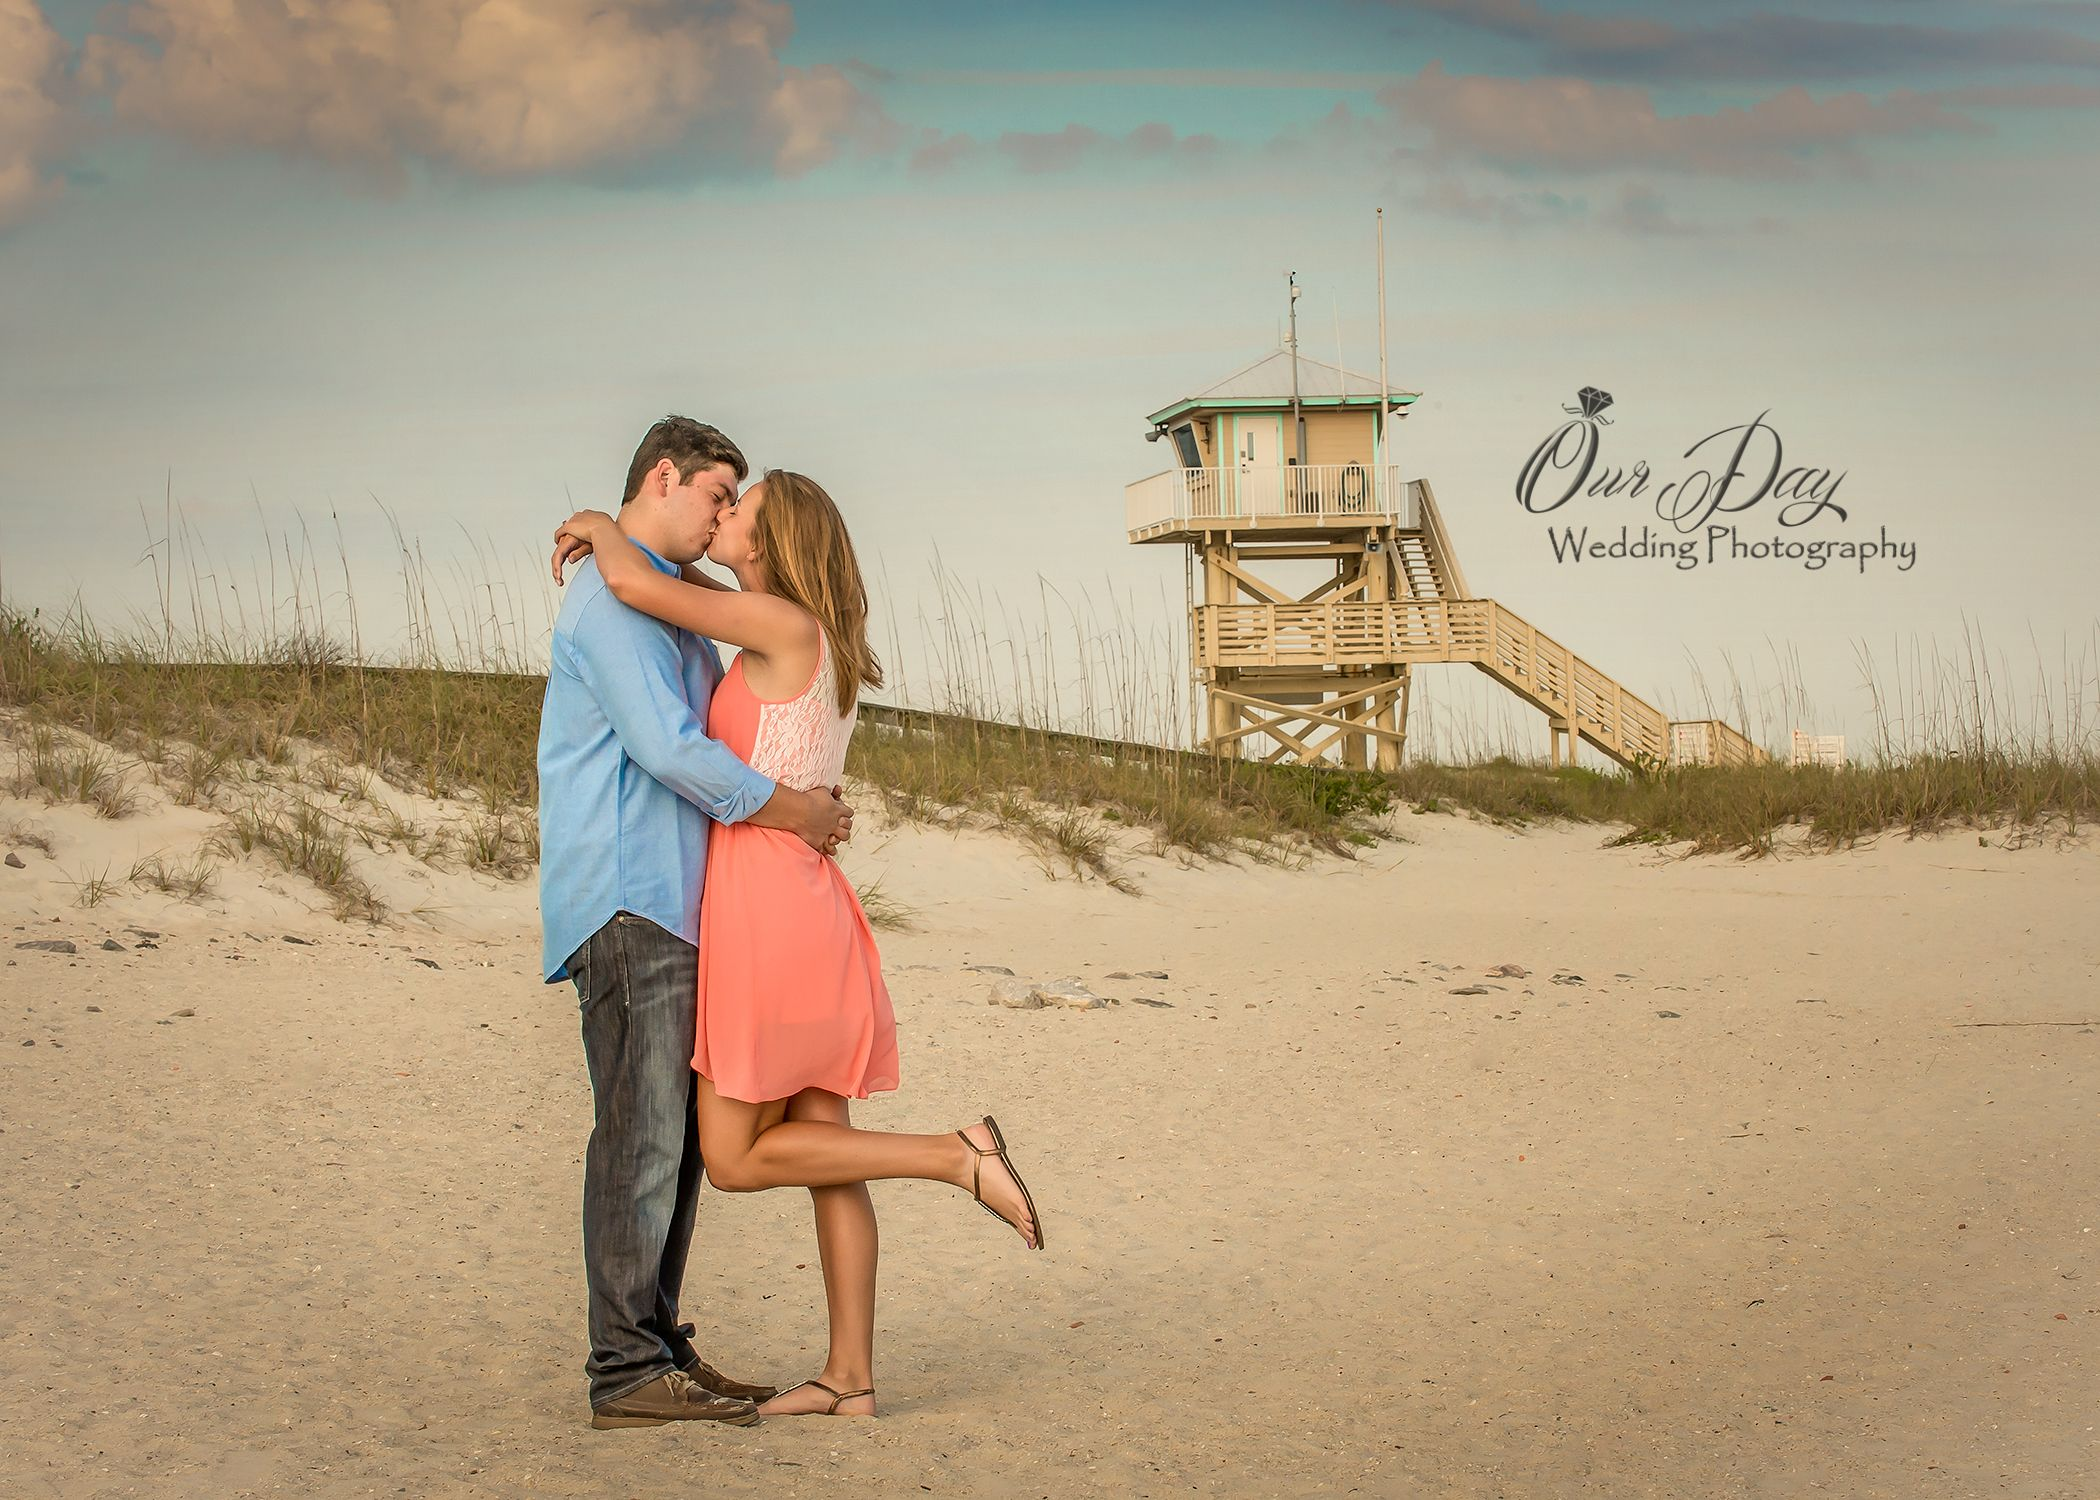 "Beach Romance ... Engagements Are We !!!  "" Life is Not Measured By The Number Of Breaths We Take, But By The Moments That Take Our Breath Away ... Living Photography... ~ GotYaPhoto.com Also We Are The Division Devoted To Couples In Love ~ www.OurDayWedding... Kimberly Phipps ~ Photographer Daniel Phipps ~ Photographer (386)214-6245"